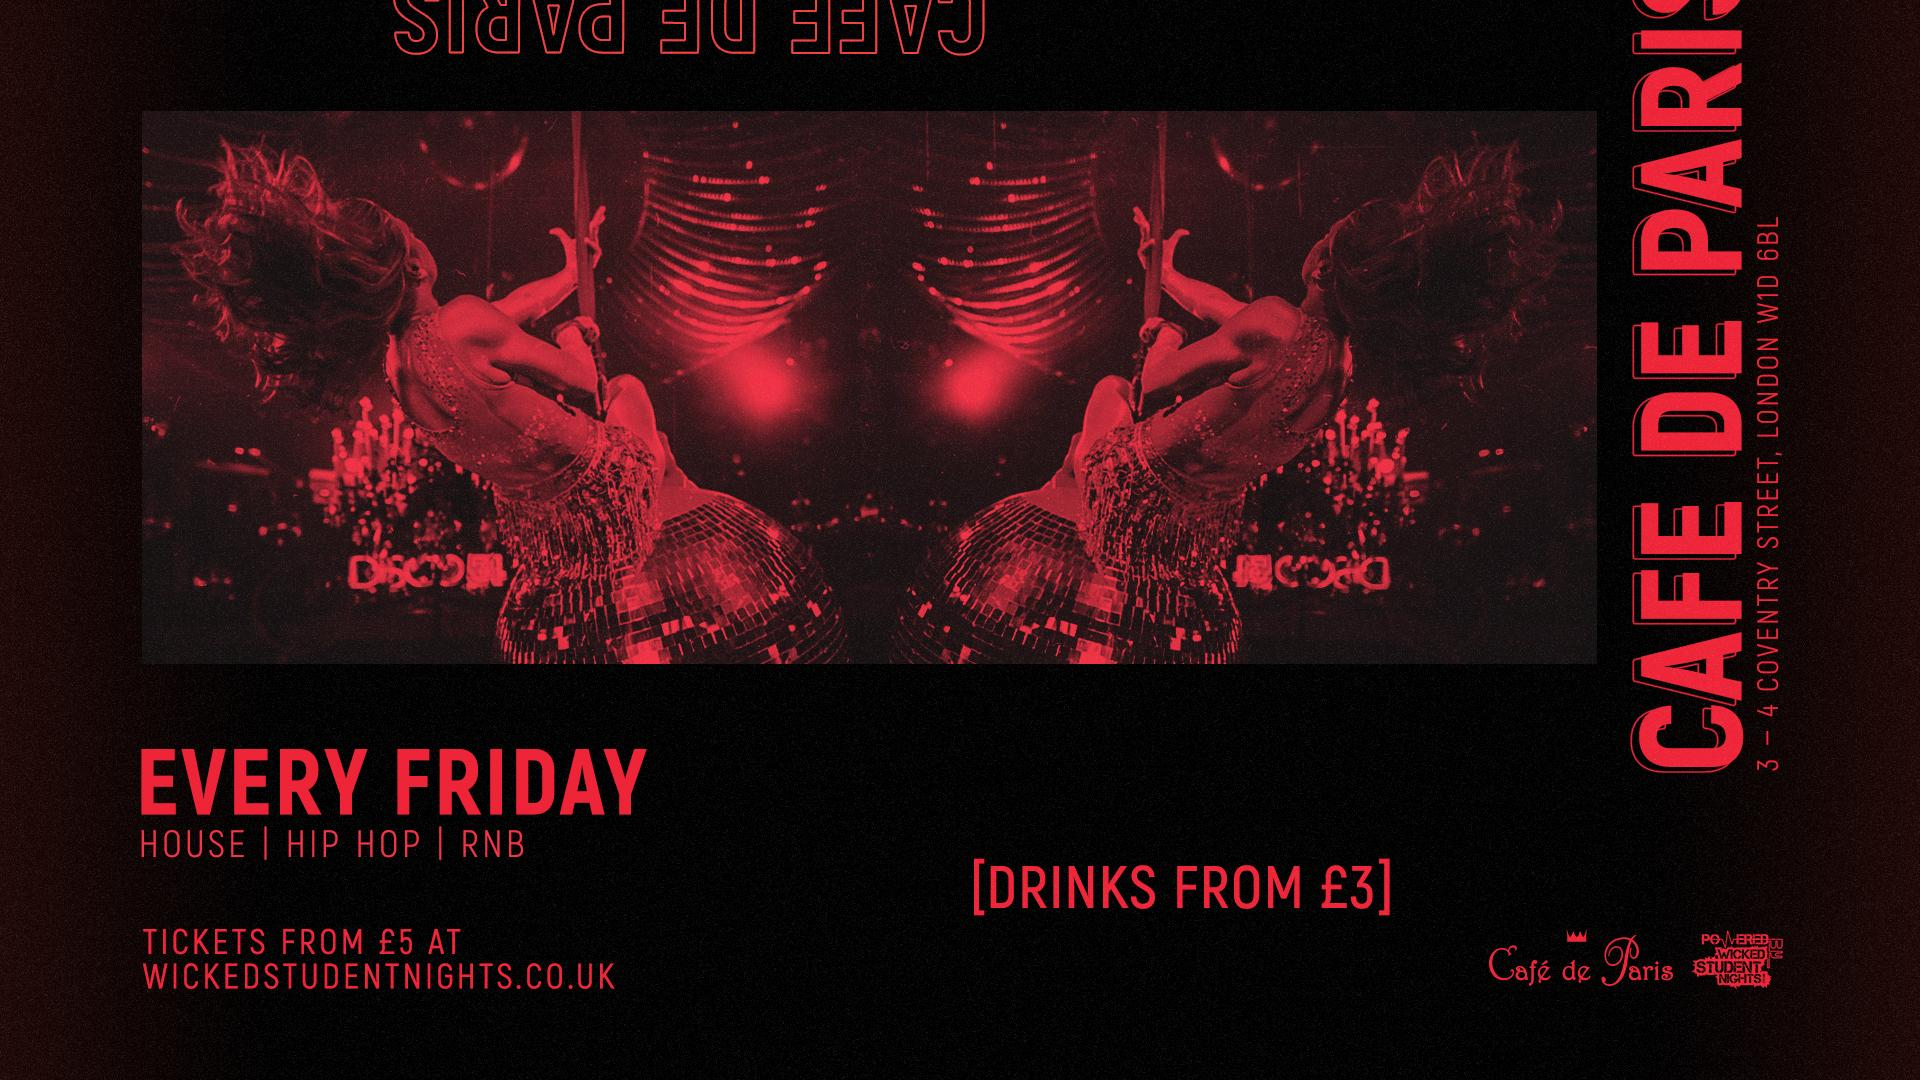 Wicked Student Nights every Friday at Cafe de Paris